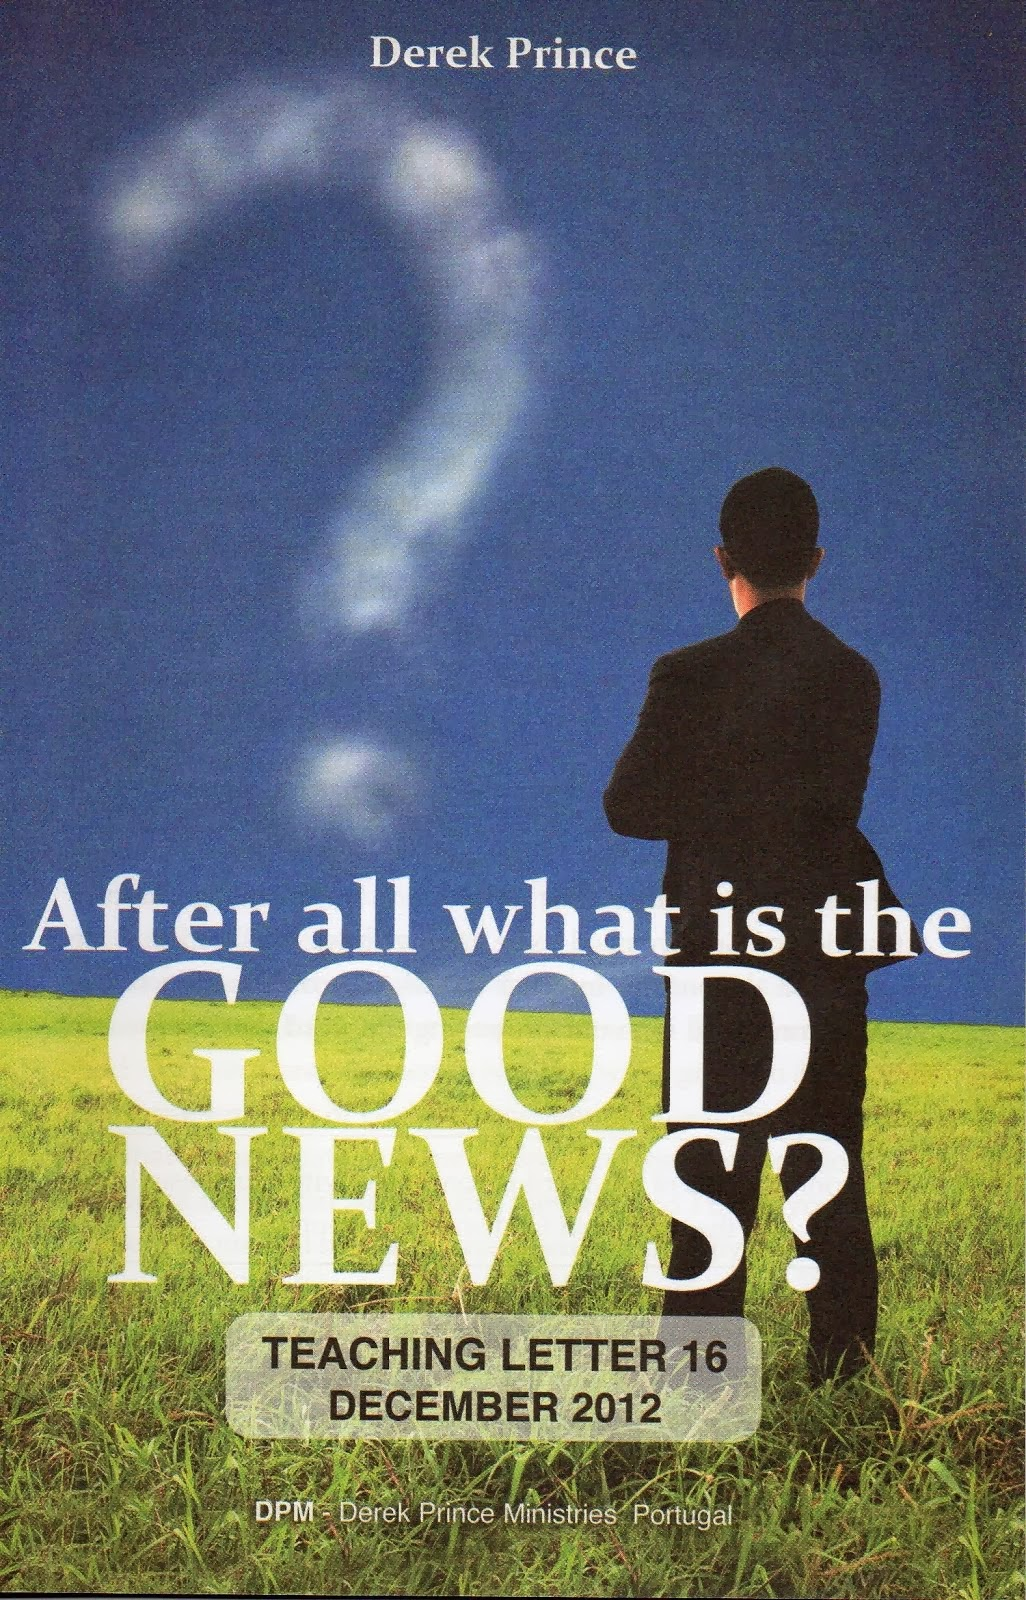 After all what is the Good News?